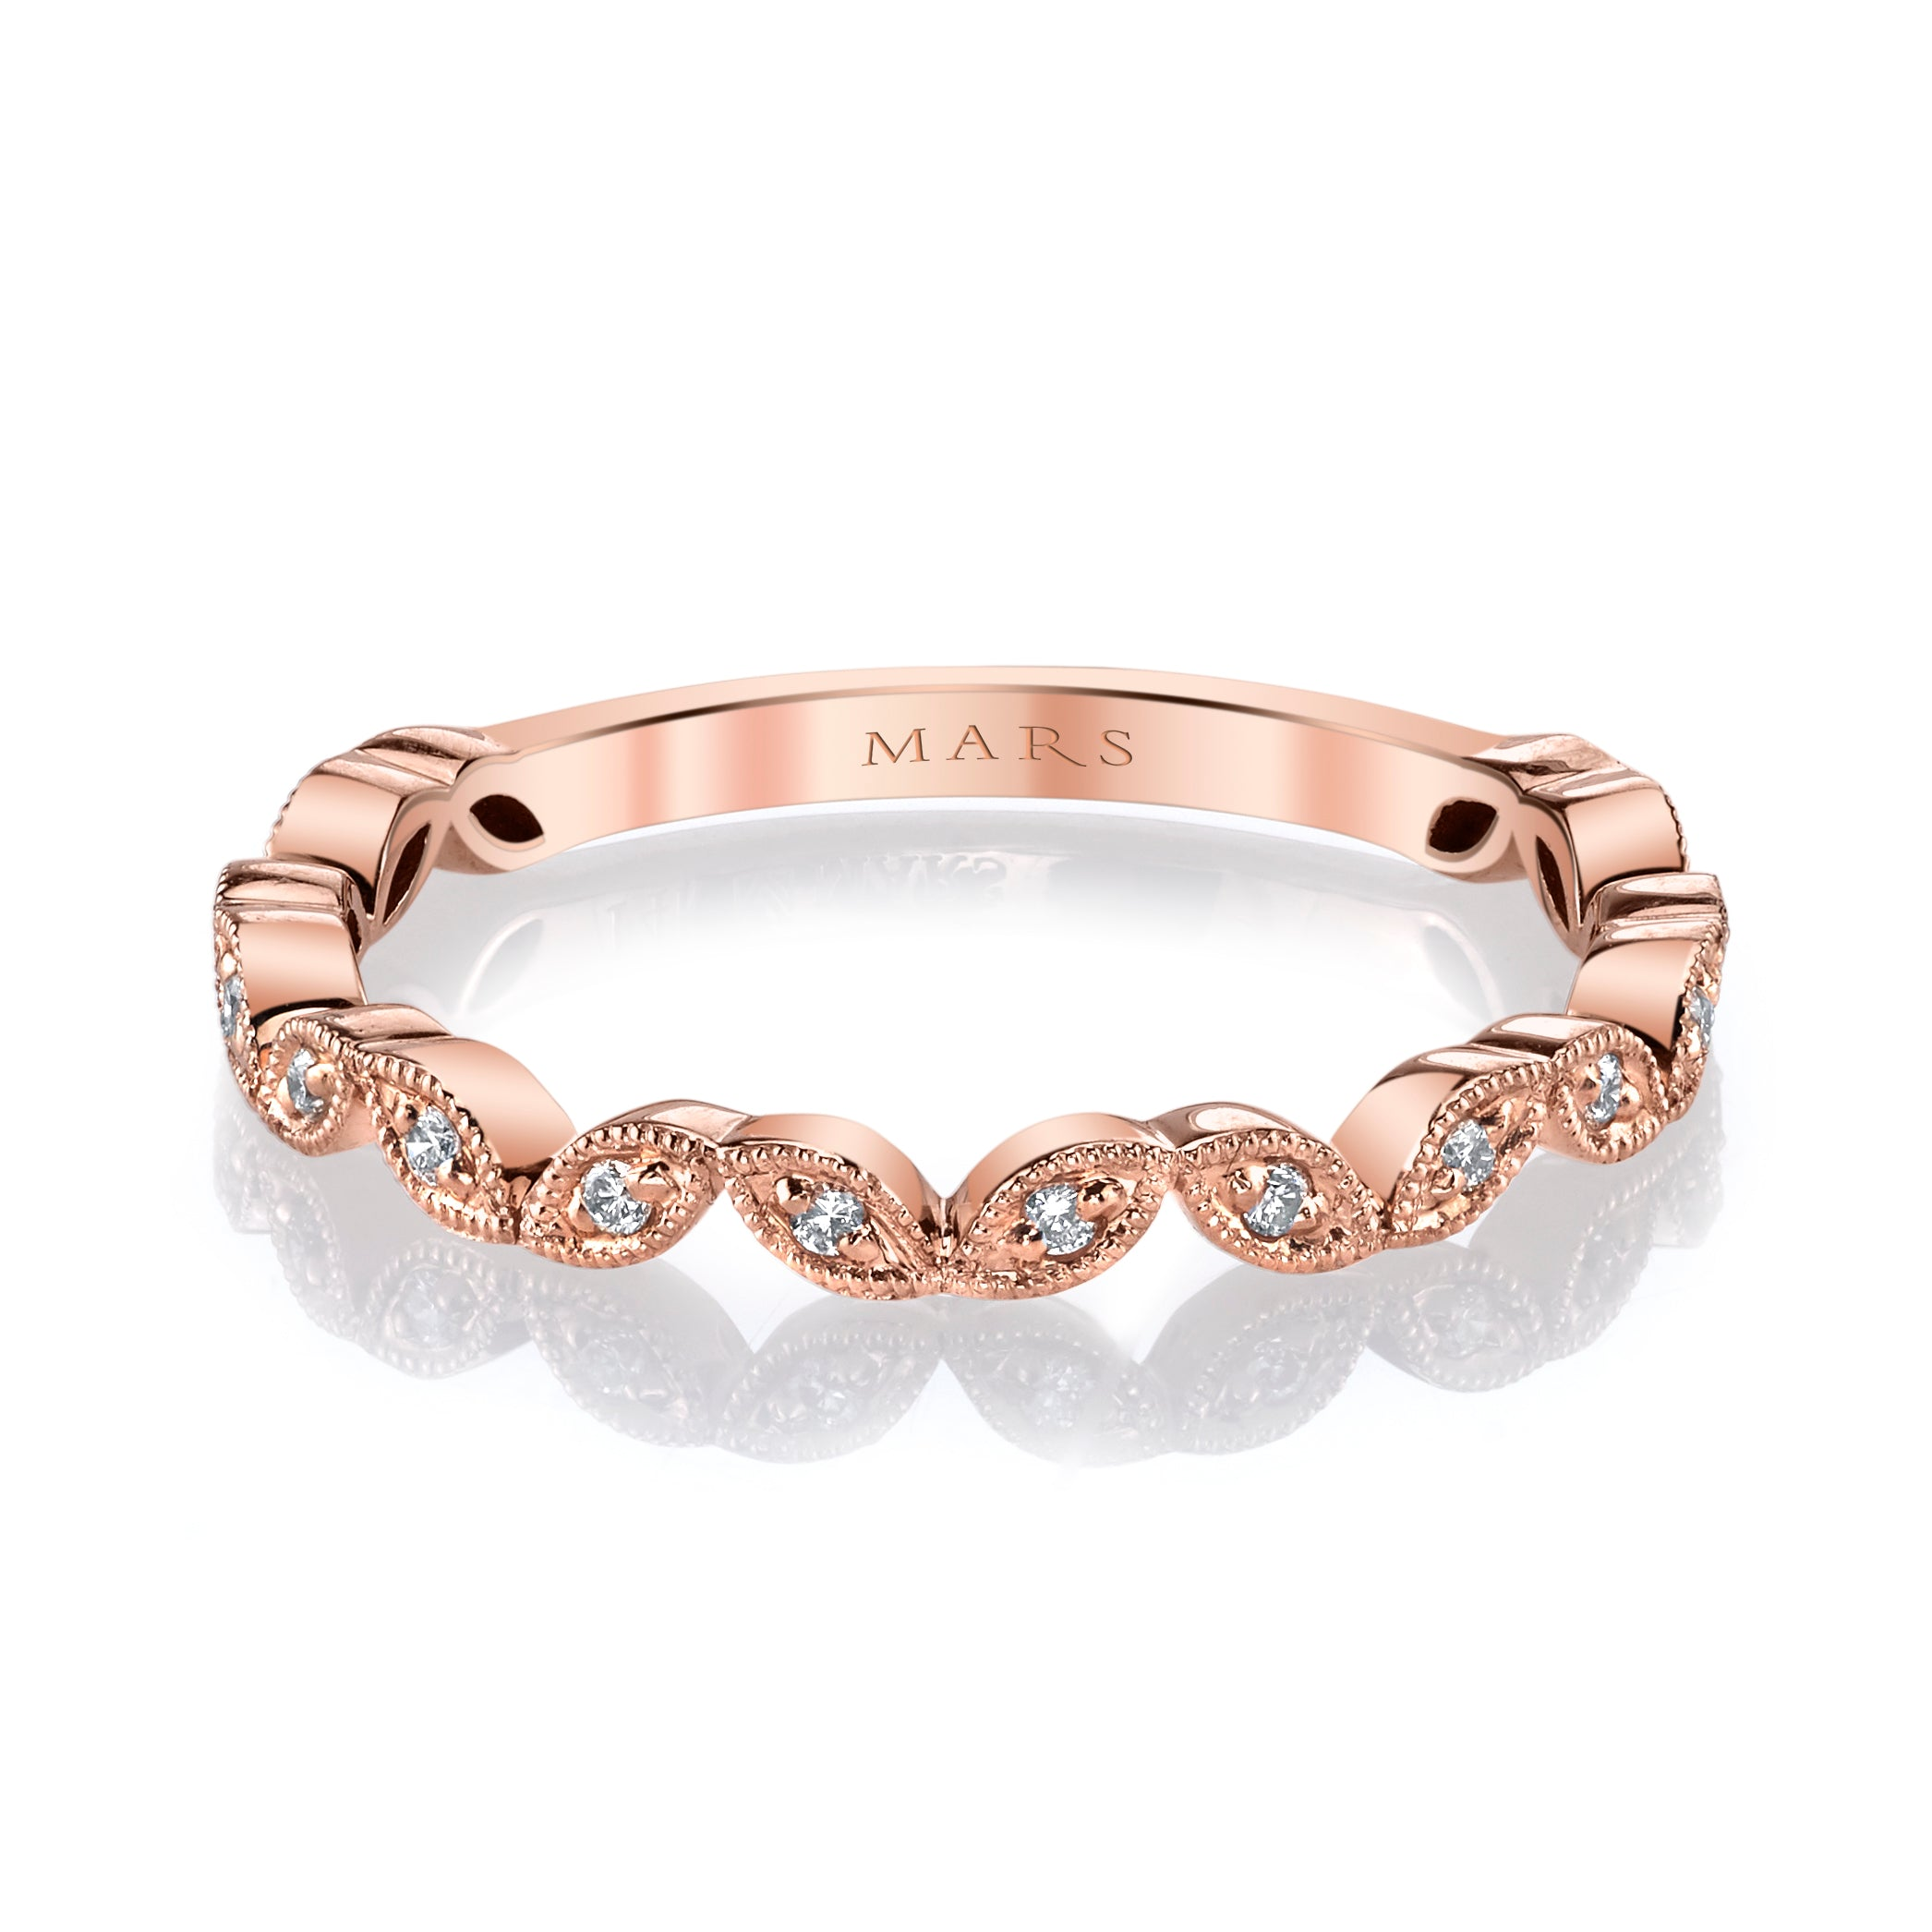 Mars Jewelry 14K Rose Gold Stackable Band w/ Miligrain Detailing 26692